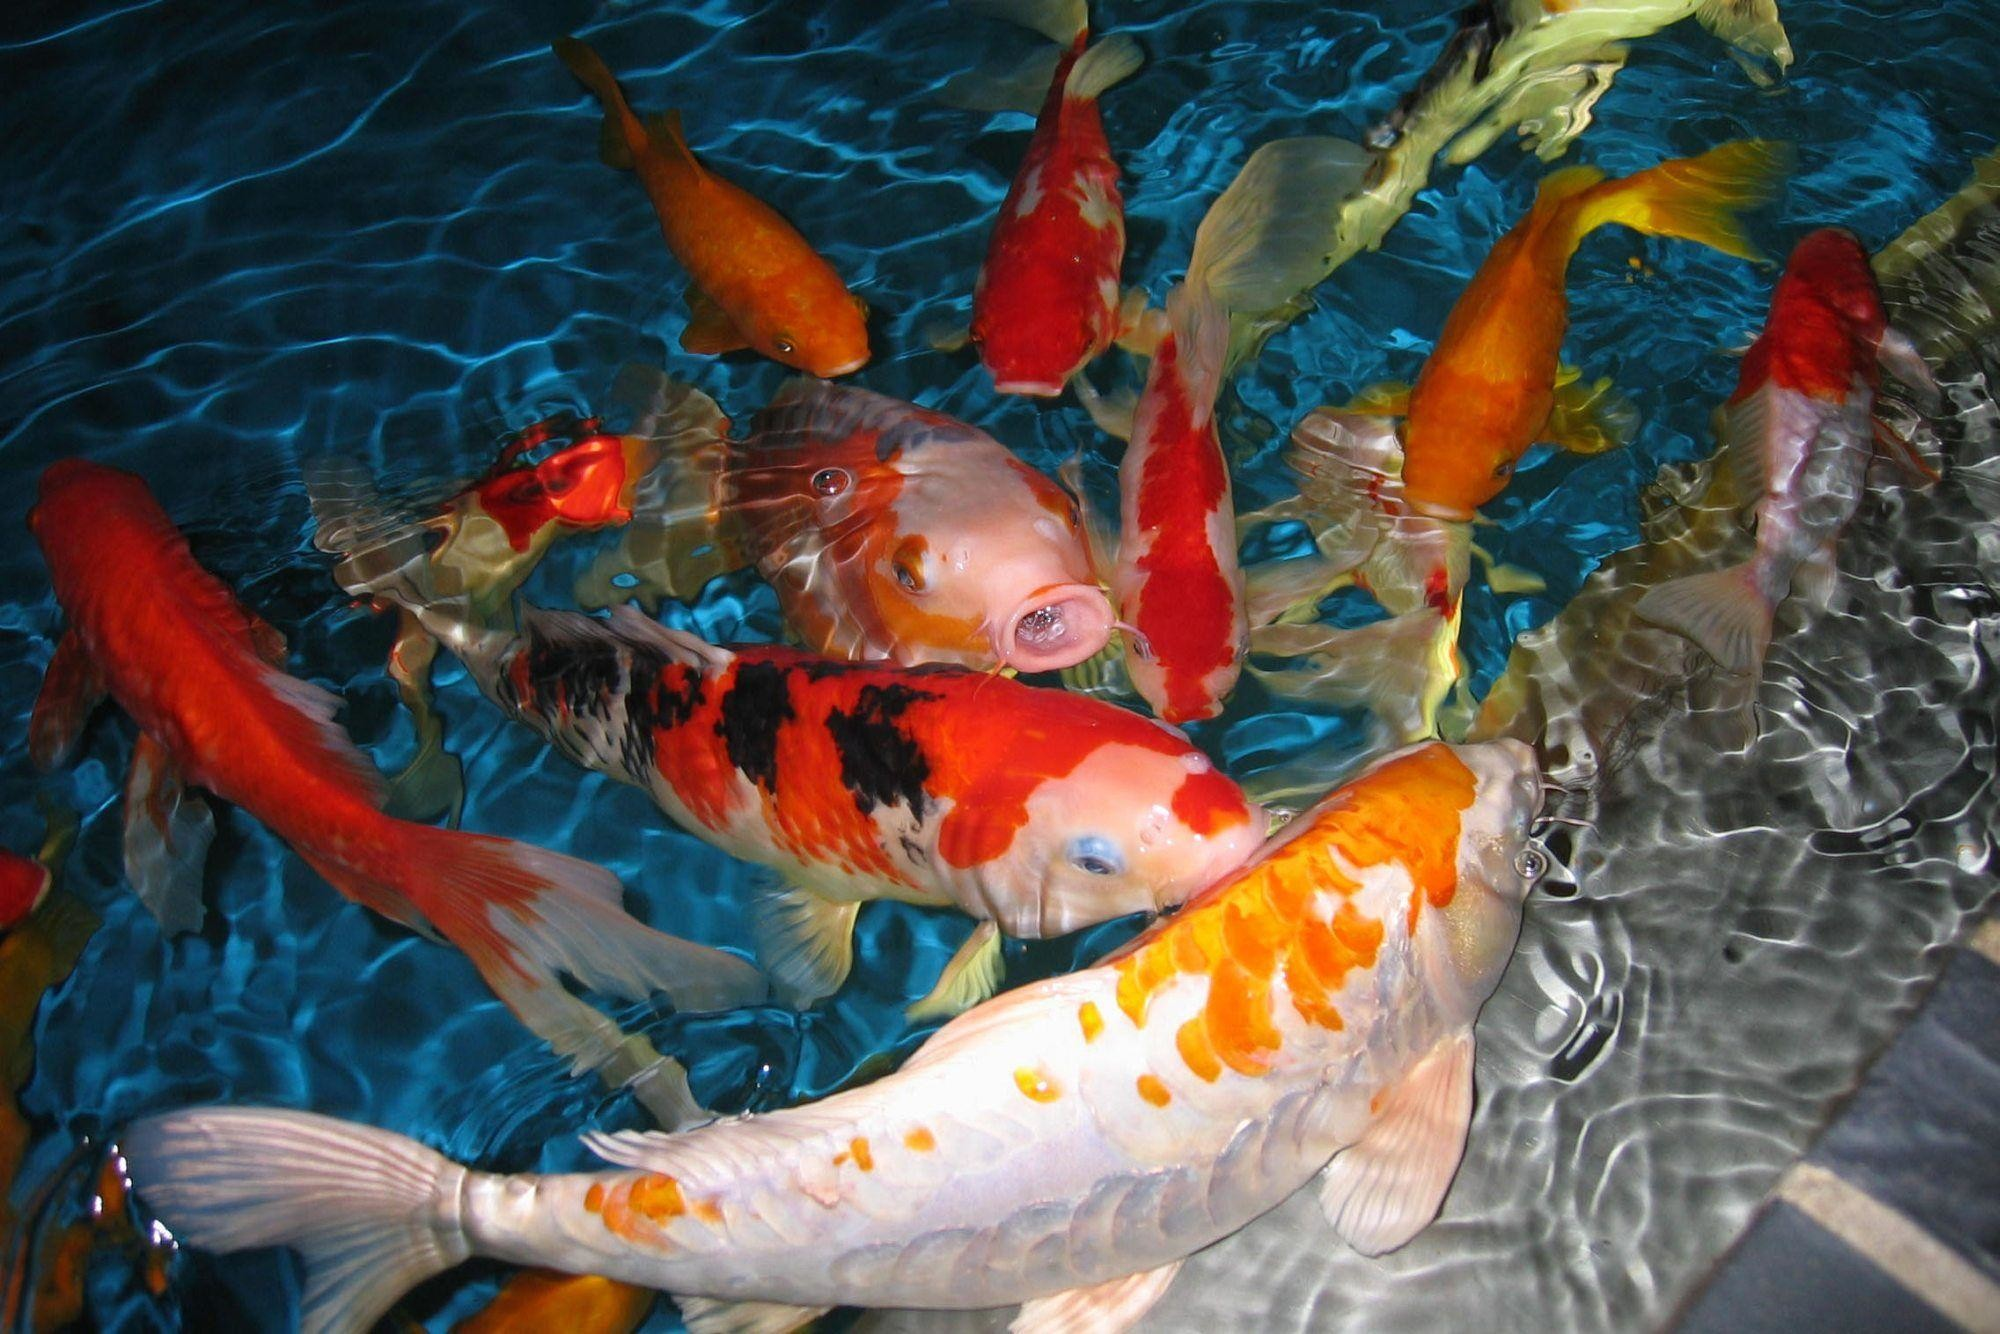 2000x1334 HD Koi Fish Wallpapers by James Giles #5